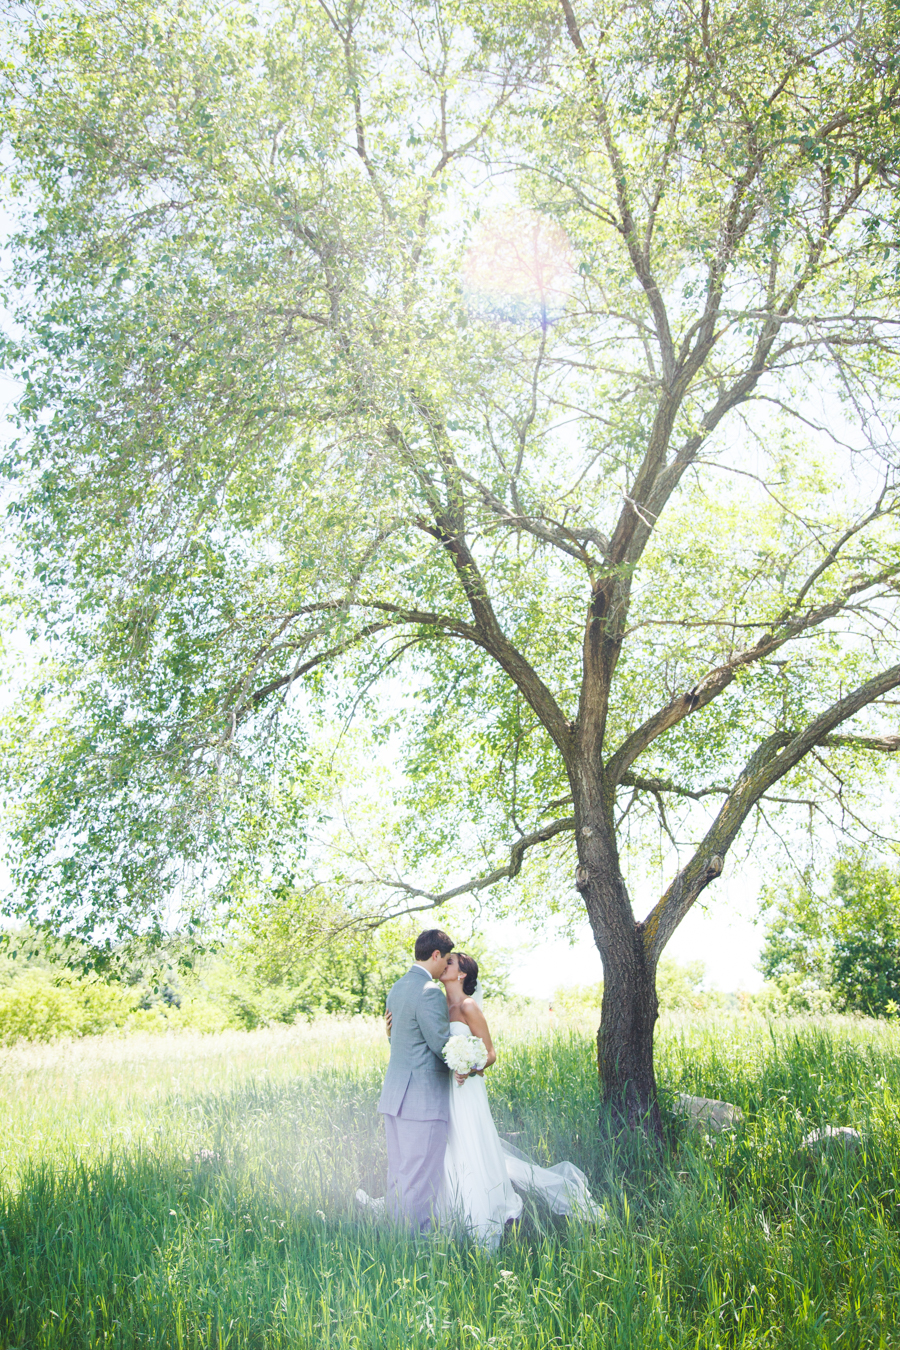 Minnesota Wedding Photographer, Minnesota Summer Wedding, Minnesota Golf Course Wedding, Allison Hopperstad Photography, Stonebrooke Golf Course, Stonebrooke Shakopee Golf Course, Stonebrooke Wedding, Easter Lutheran Church Wedding, Erin Jackson Florist, Bella Bridal Bride, Bella Bridal Wedding Dress, Lantern Wedding Send Off, Lantern Send Off, Minneapolis Wedding Photographer, Lebanon Hills Photographs, Lebanon Hills Wedding Portraits